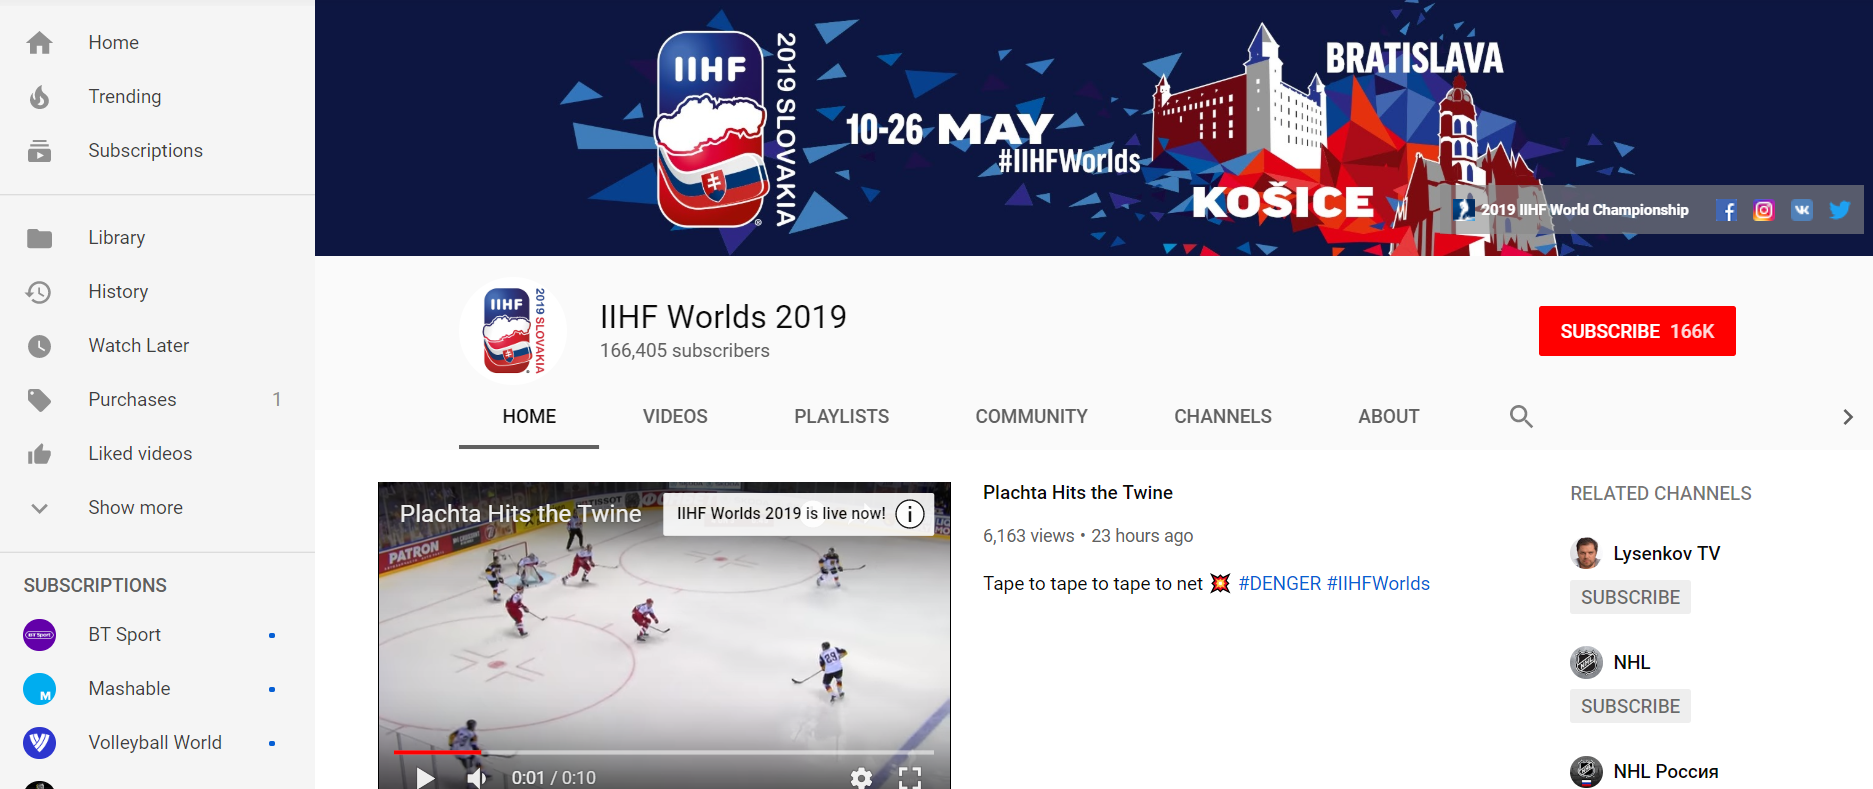 IIHF YouTube